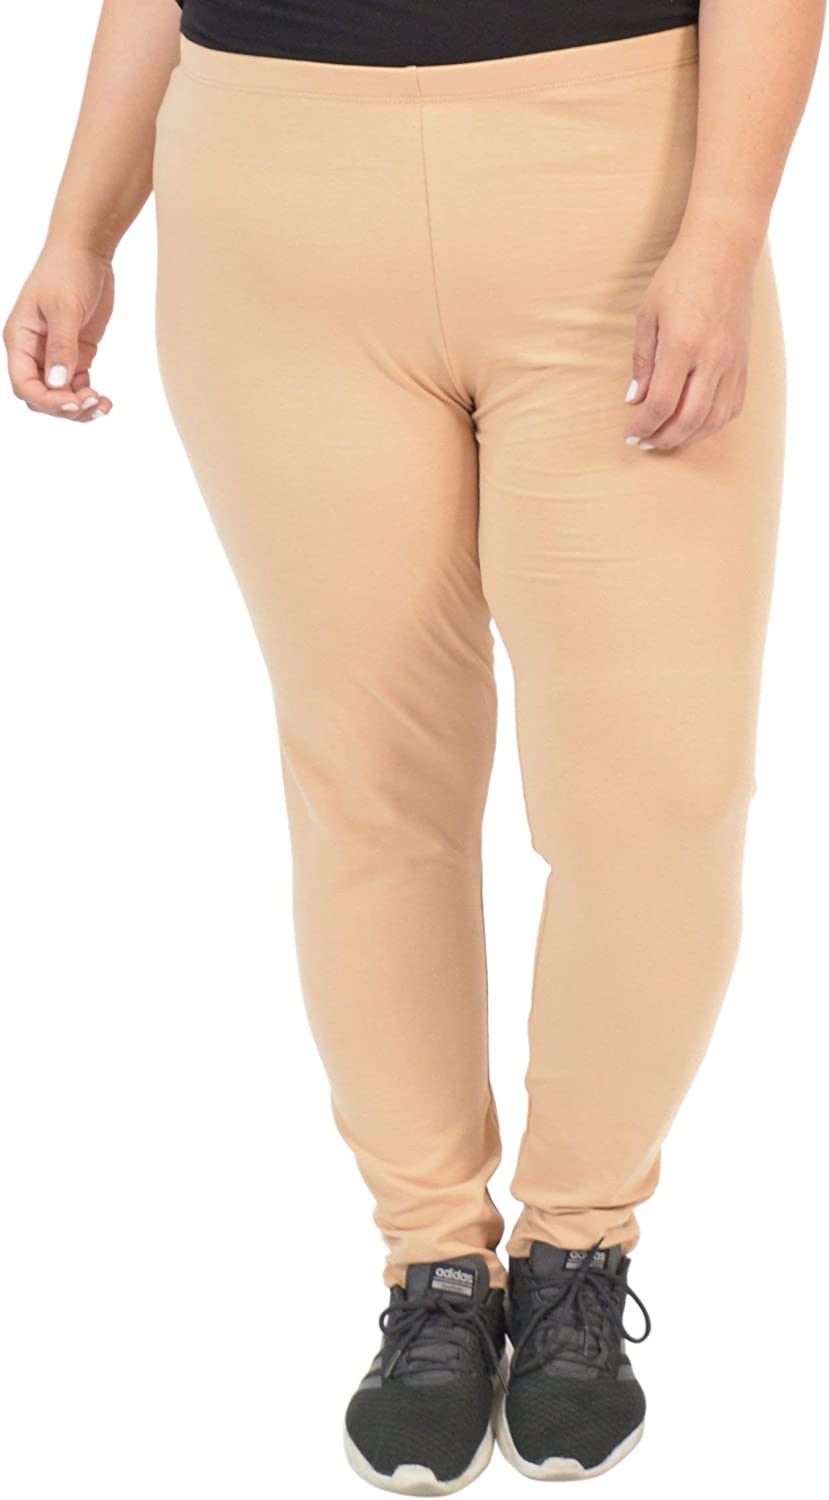 Women's Cotton Plus Size Leggings | Stretchy | X-Large - 5X | Made in The USA